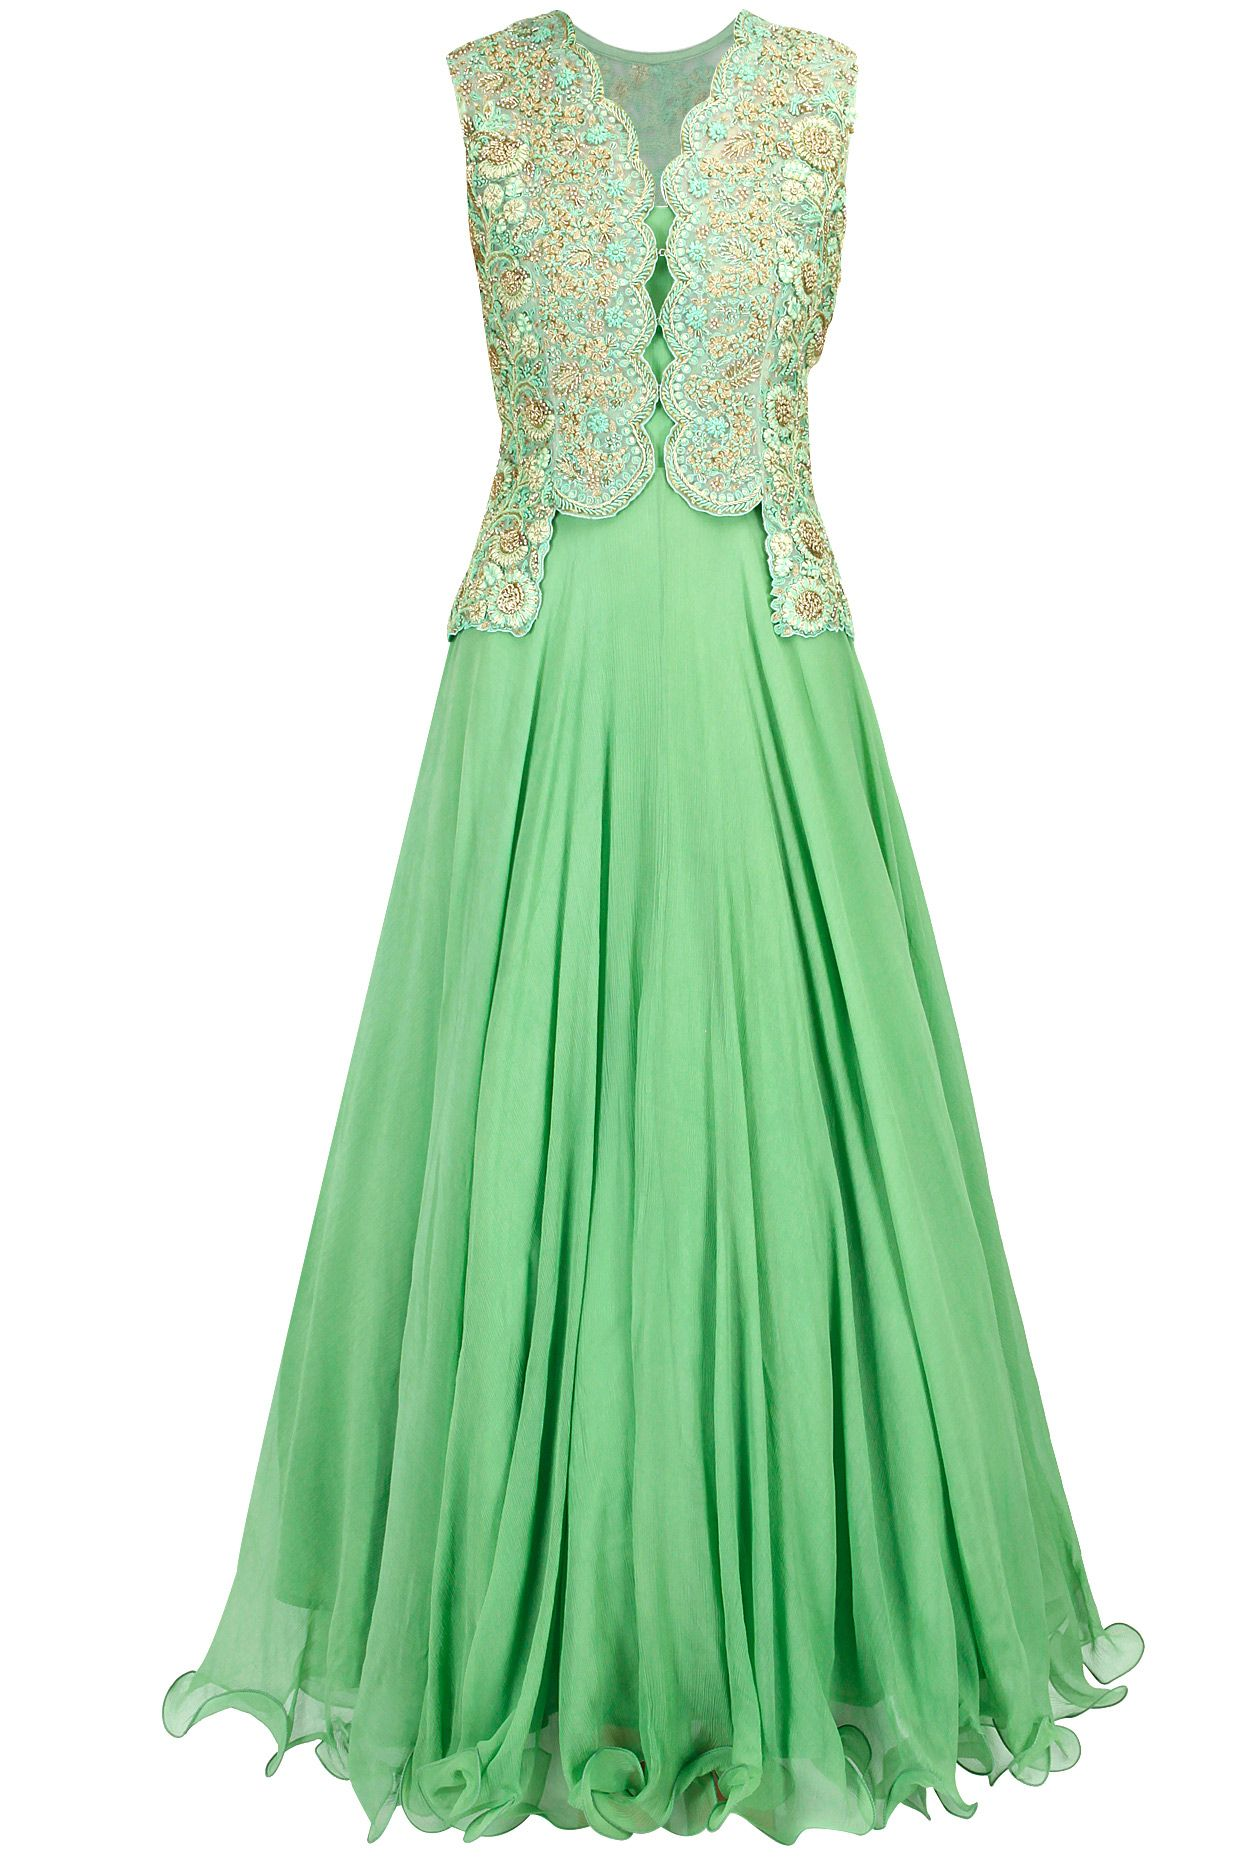 Green dress ideas  Mint green embroidered anarkali with jacket available only at